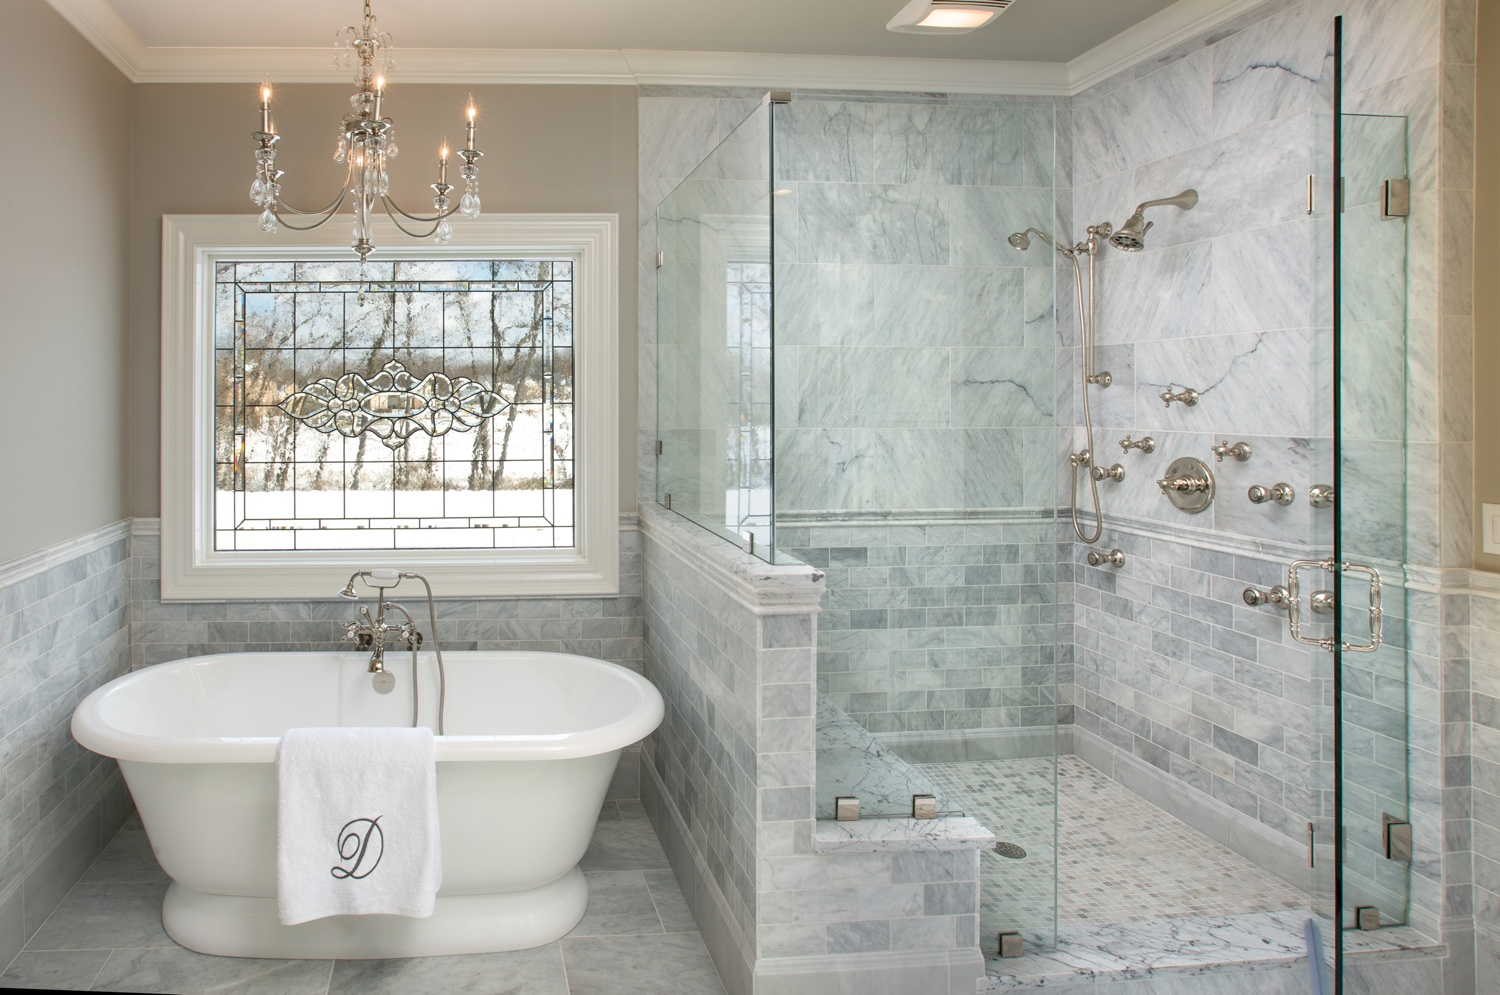 11 KEY Vastu Tips for Toilet and Bathroom - The State